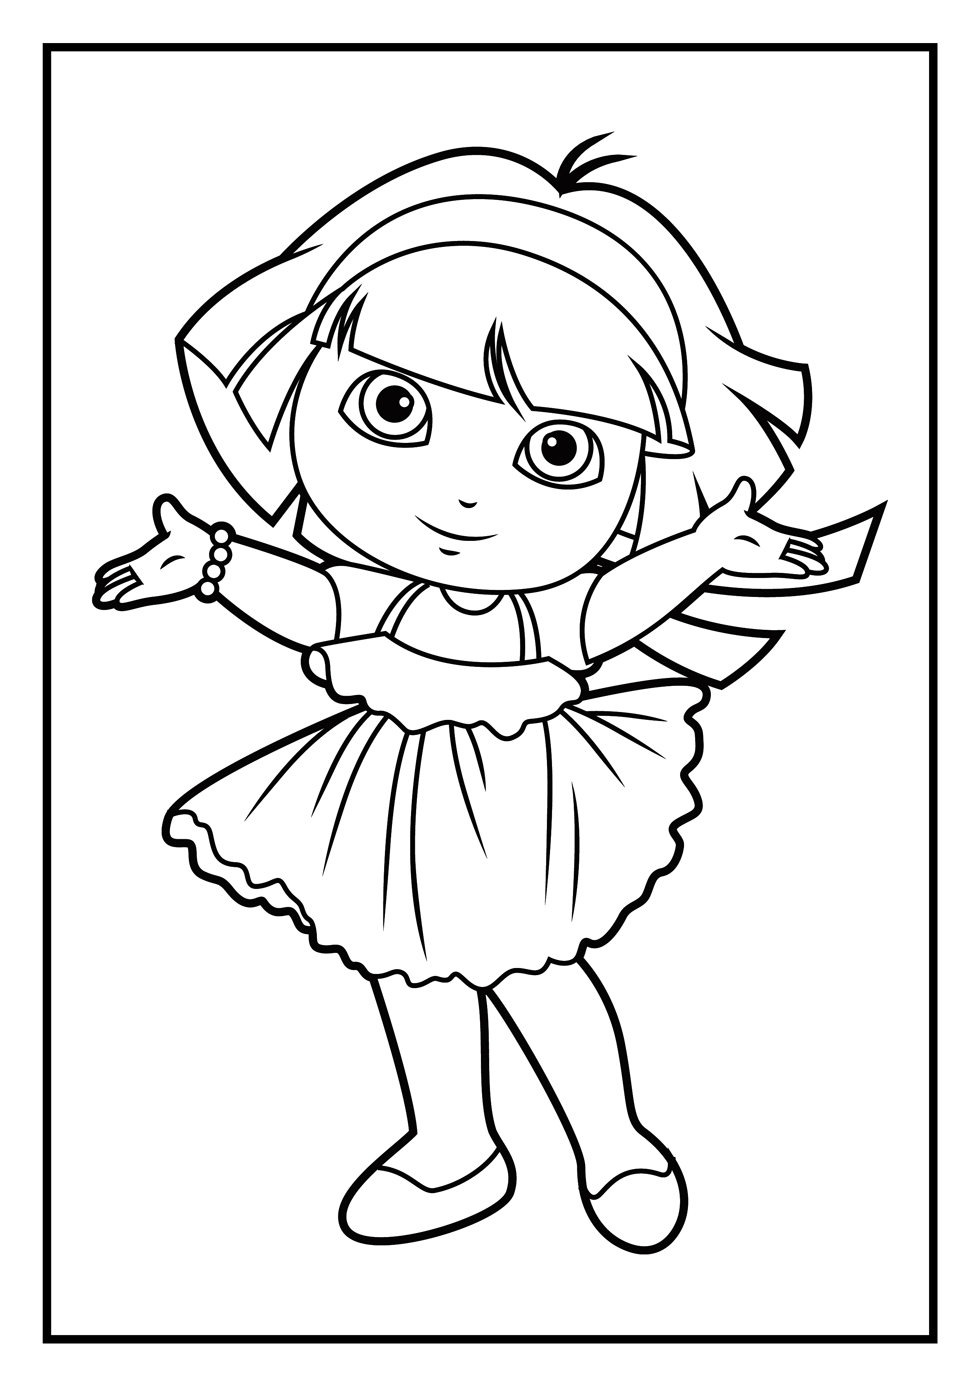 coloring pages with dora - photo#4